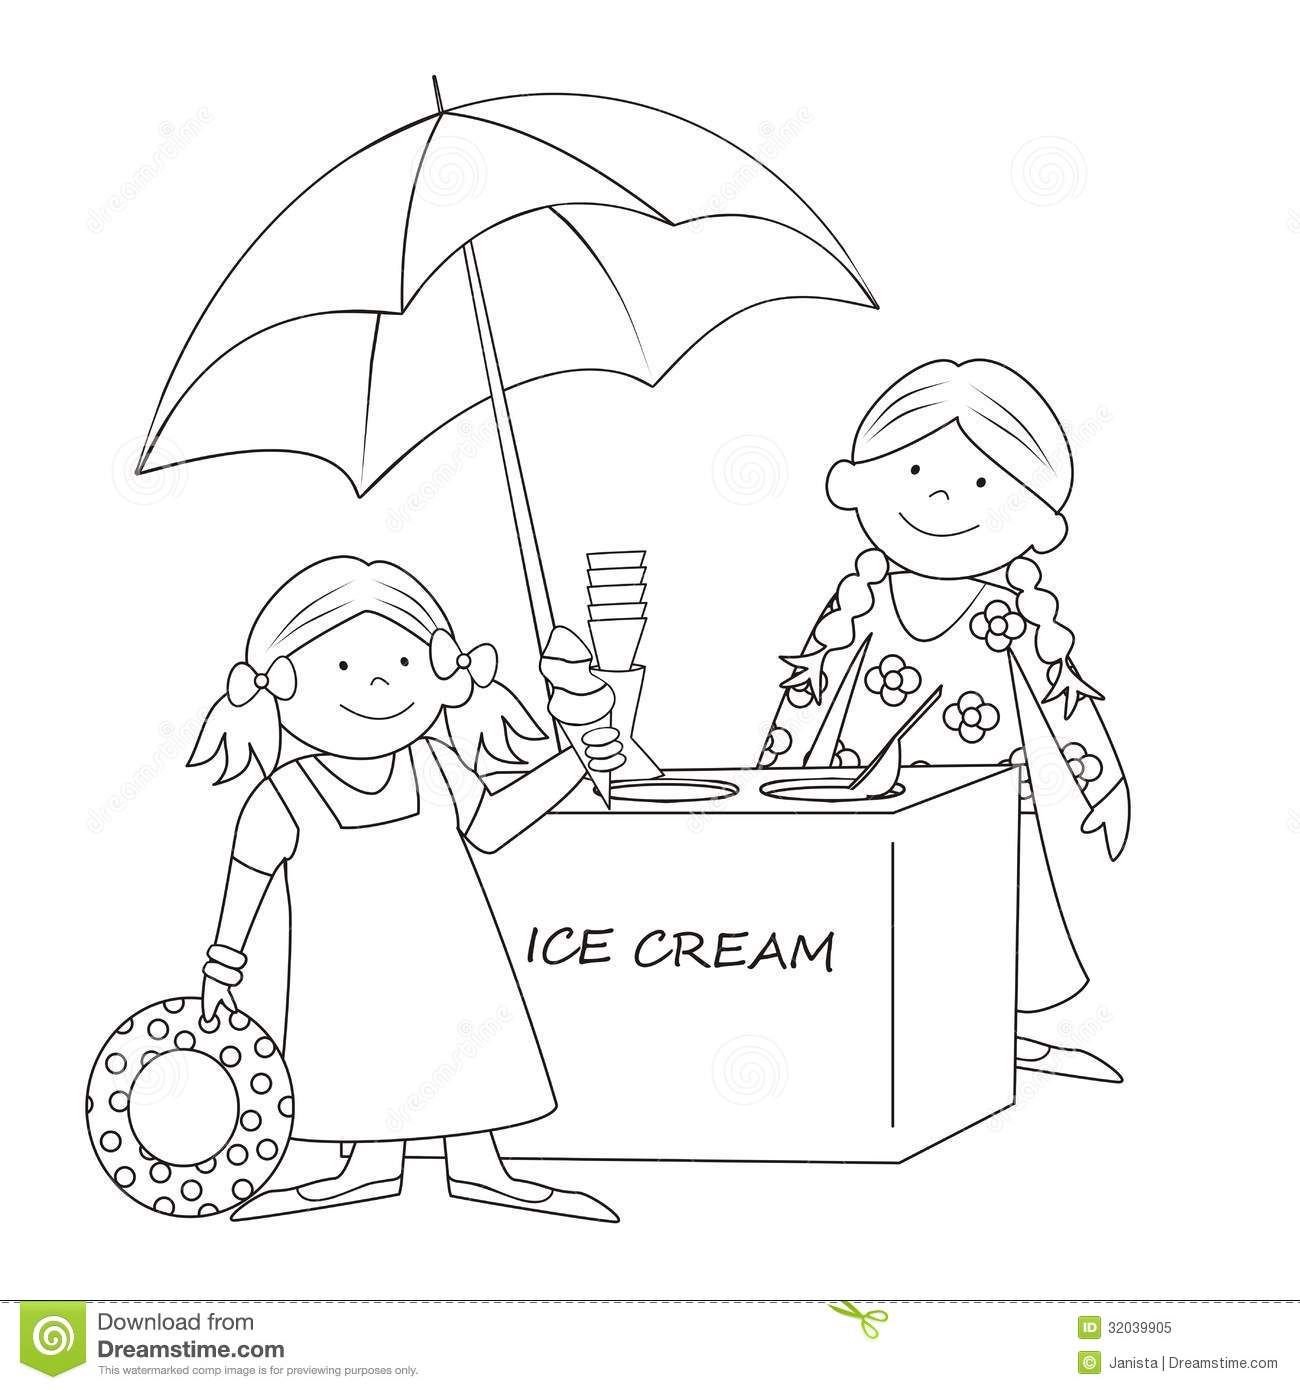 Ice cream stand-coloring stock vector. Image of card